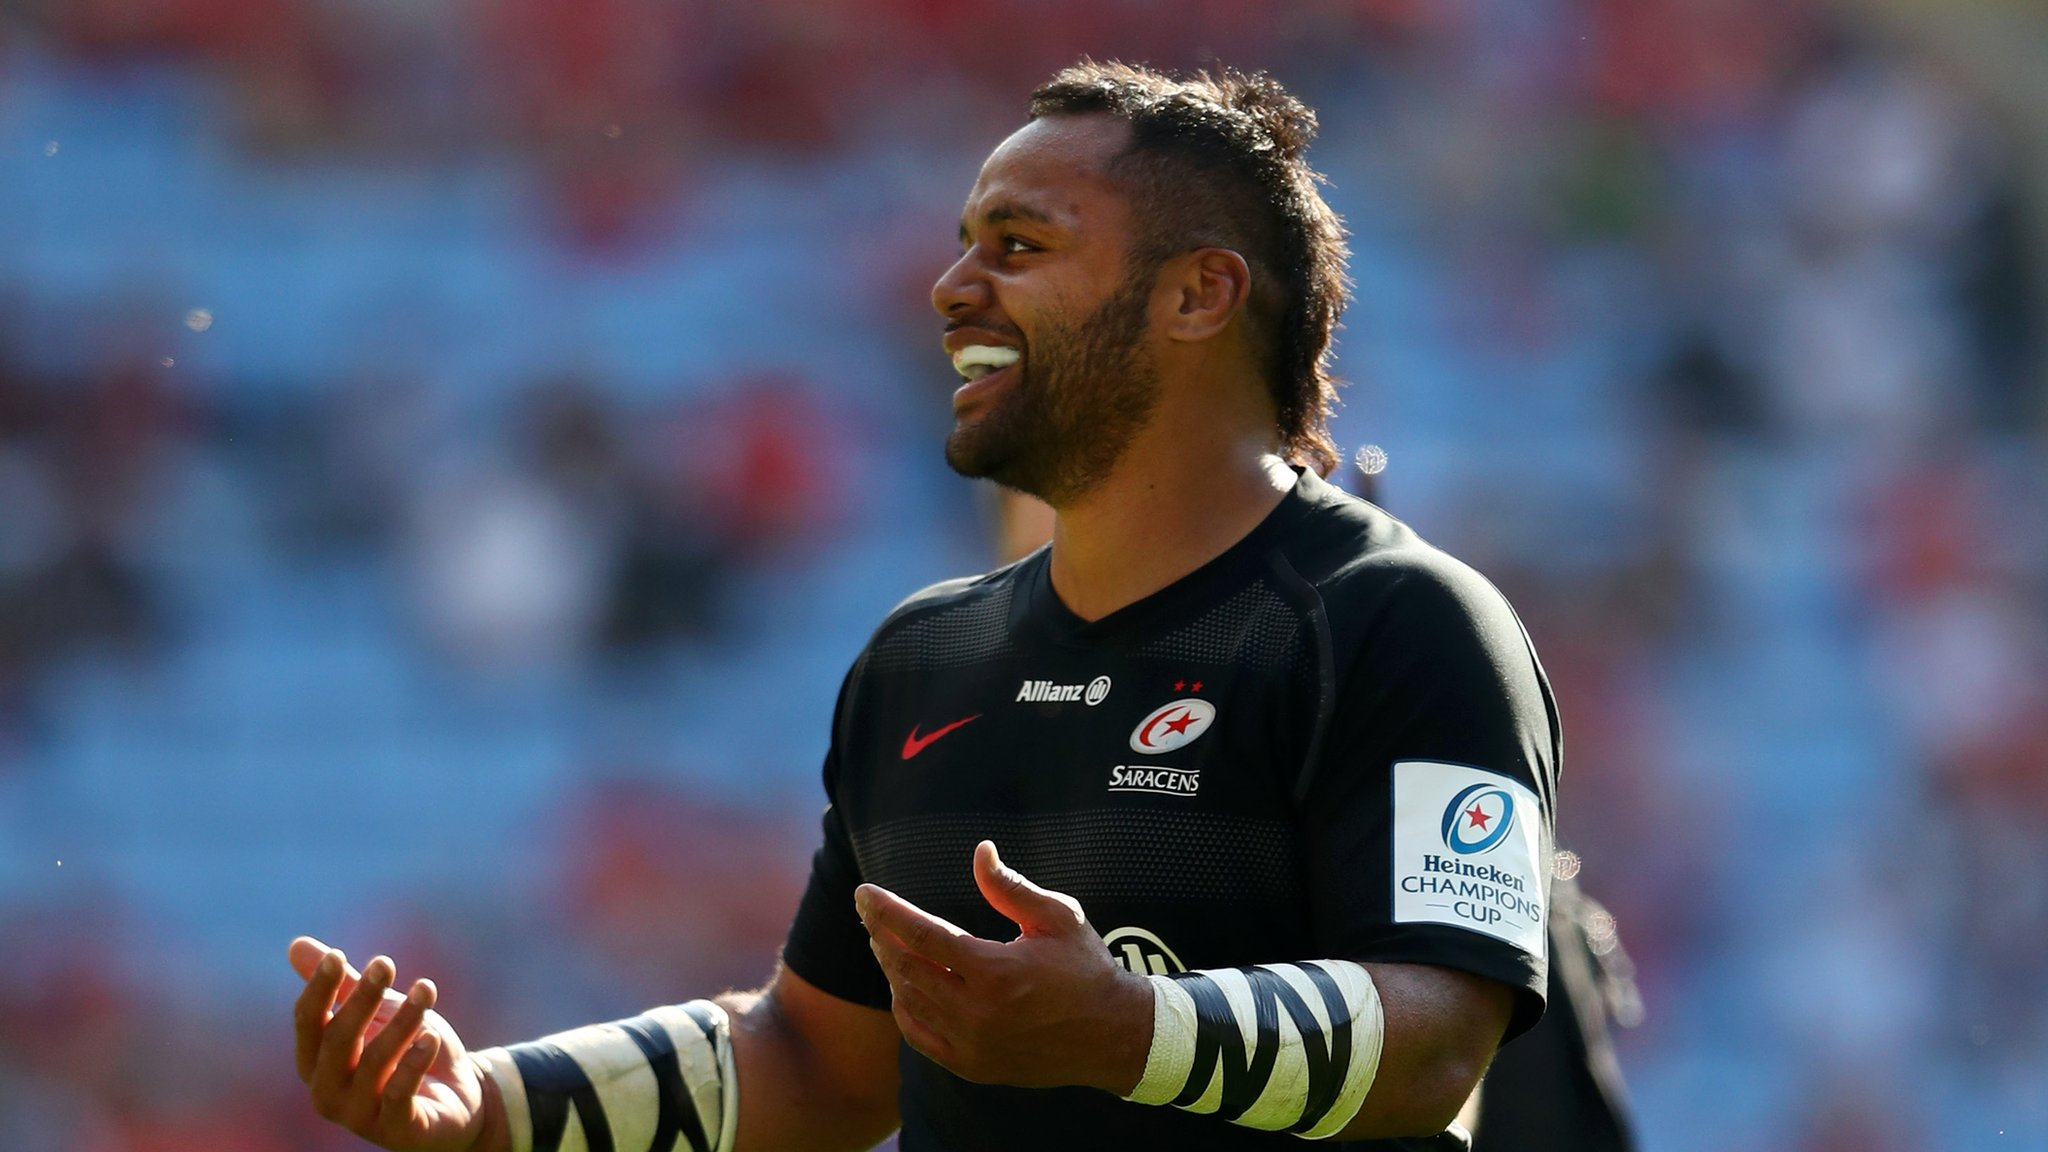 Vunipola booed and scores late try as Saracens power into final